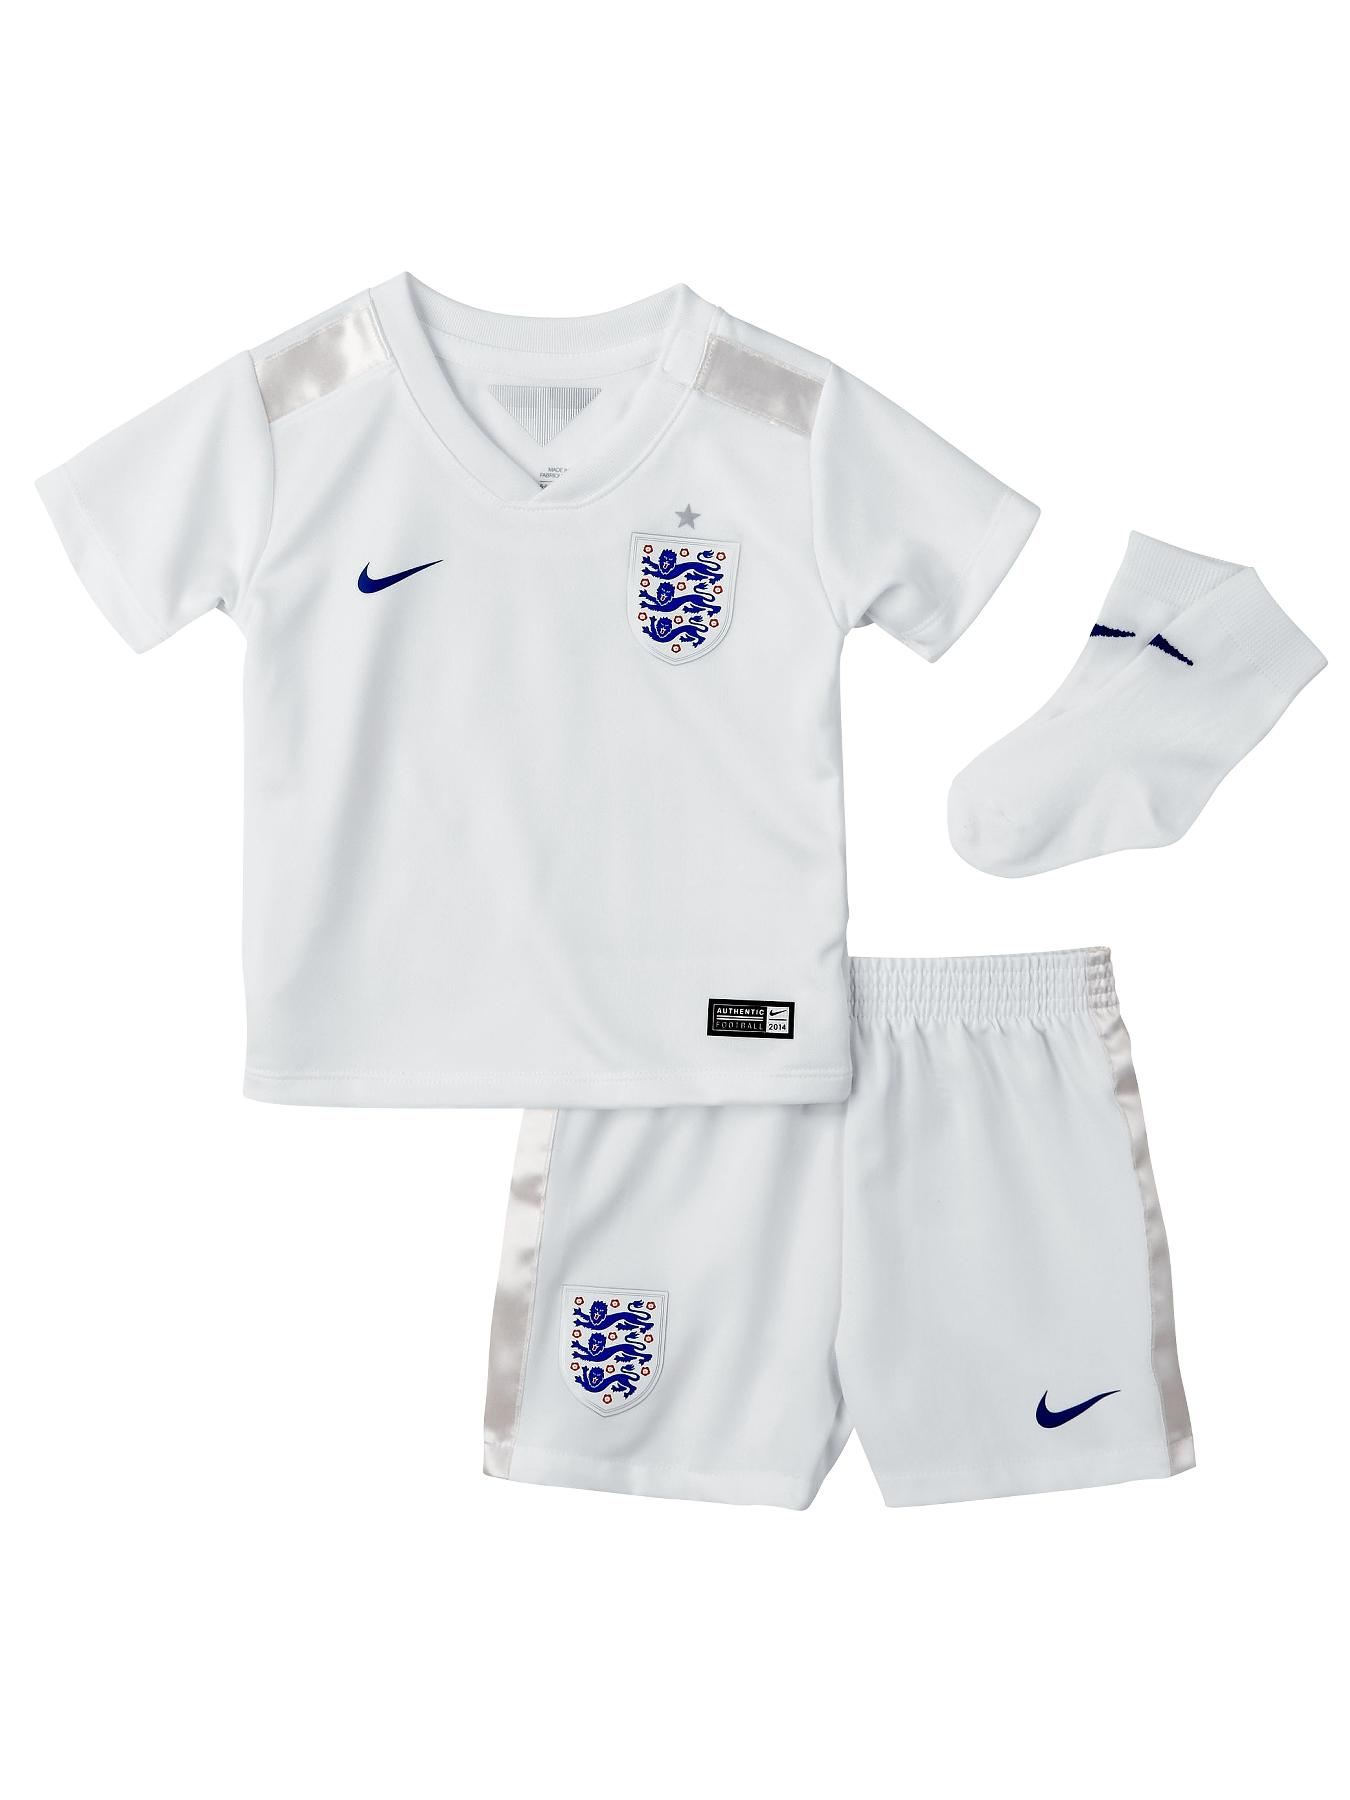 England 2014/15 Infants Home Kit, White